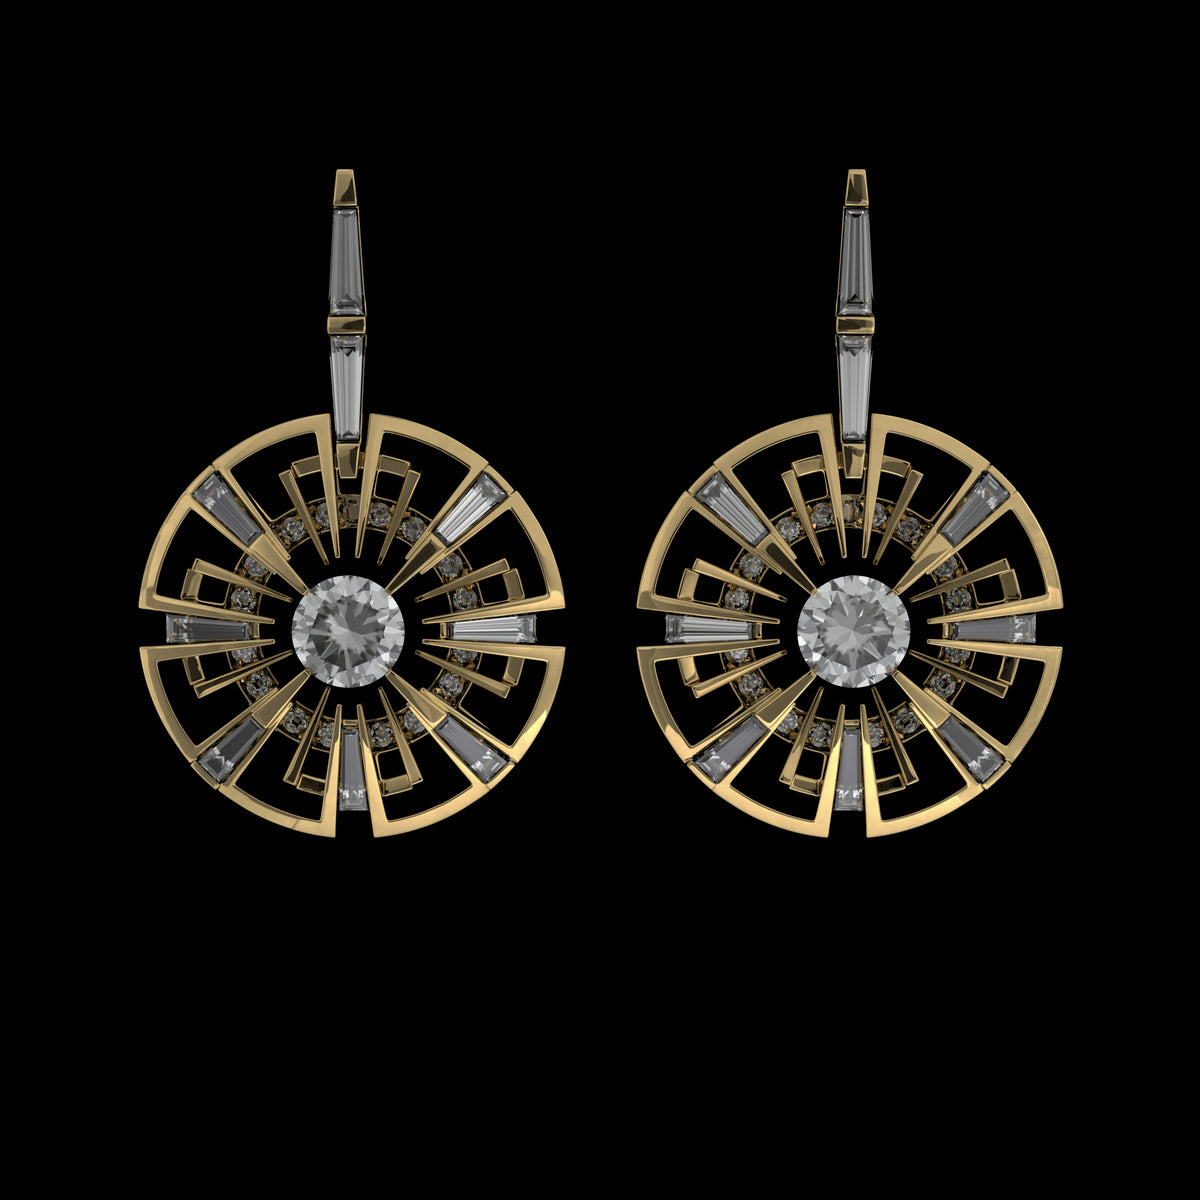 360 Degree Earrings